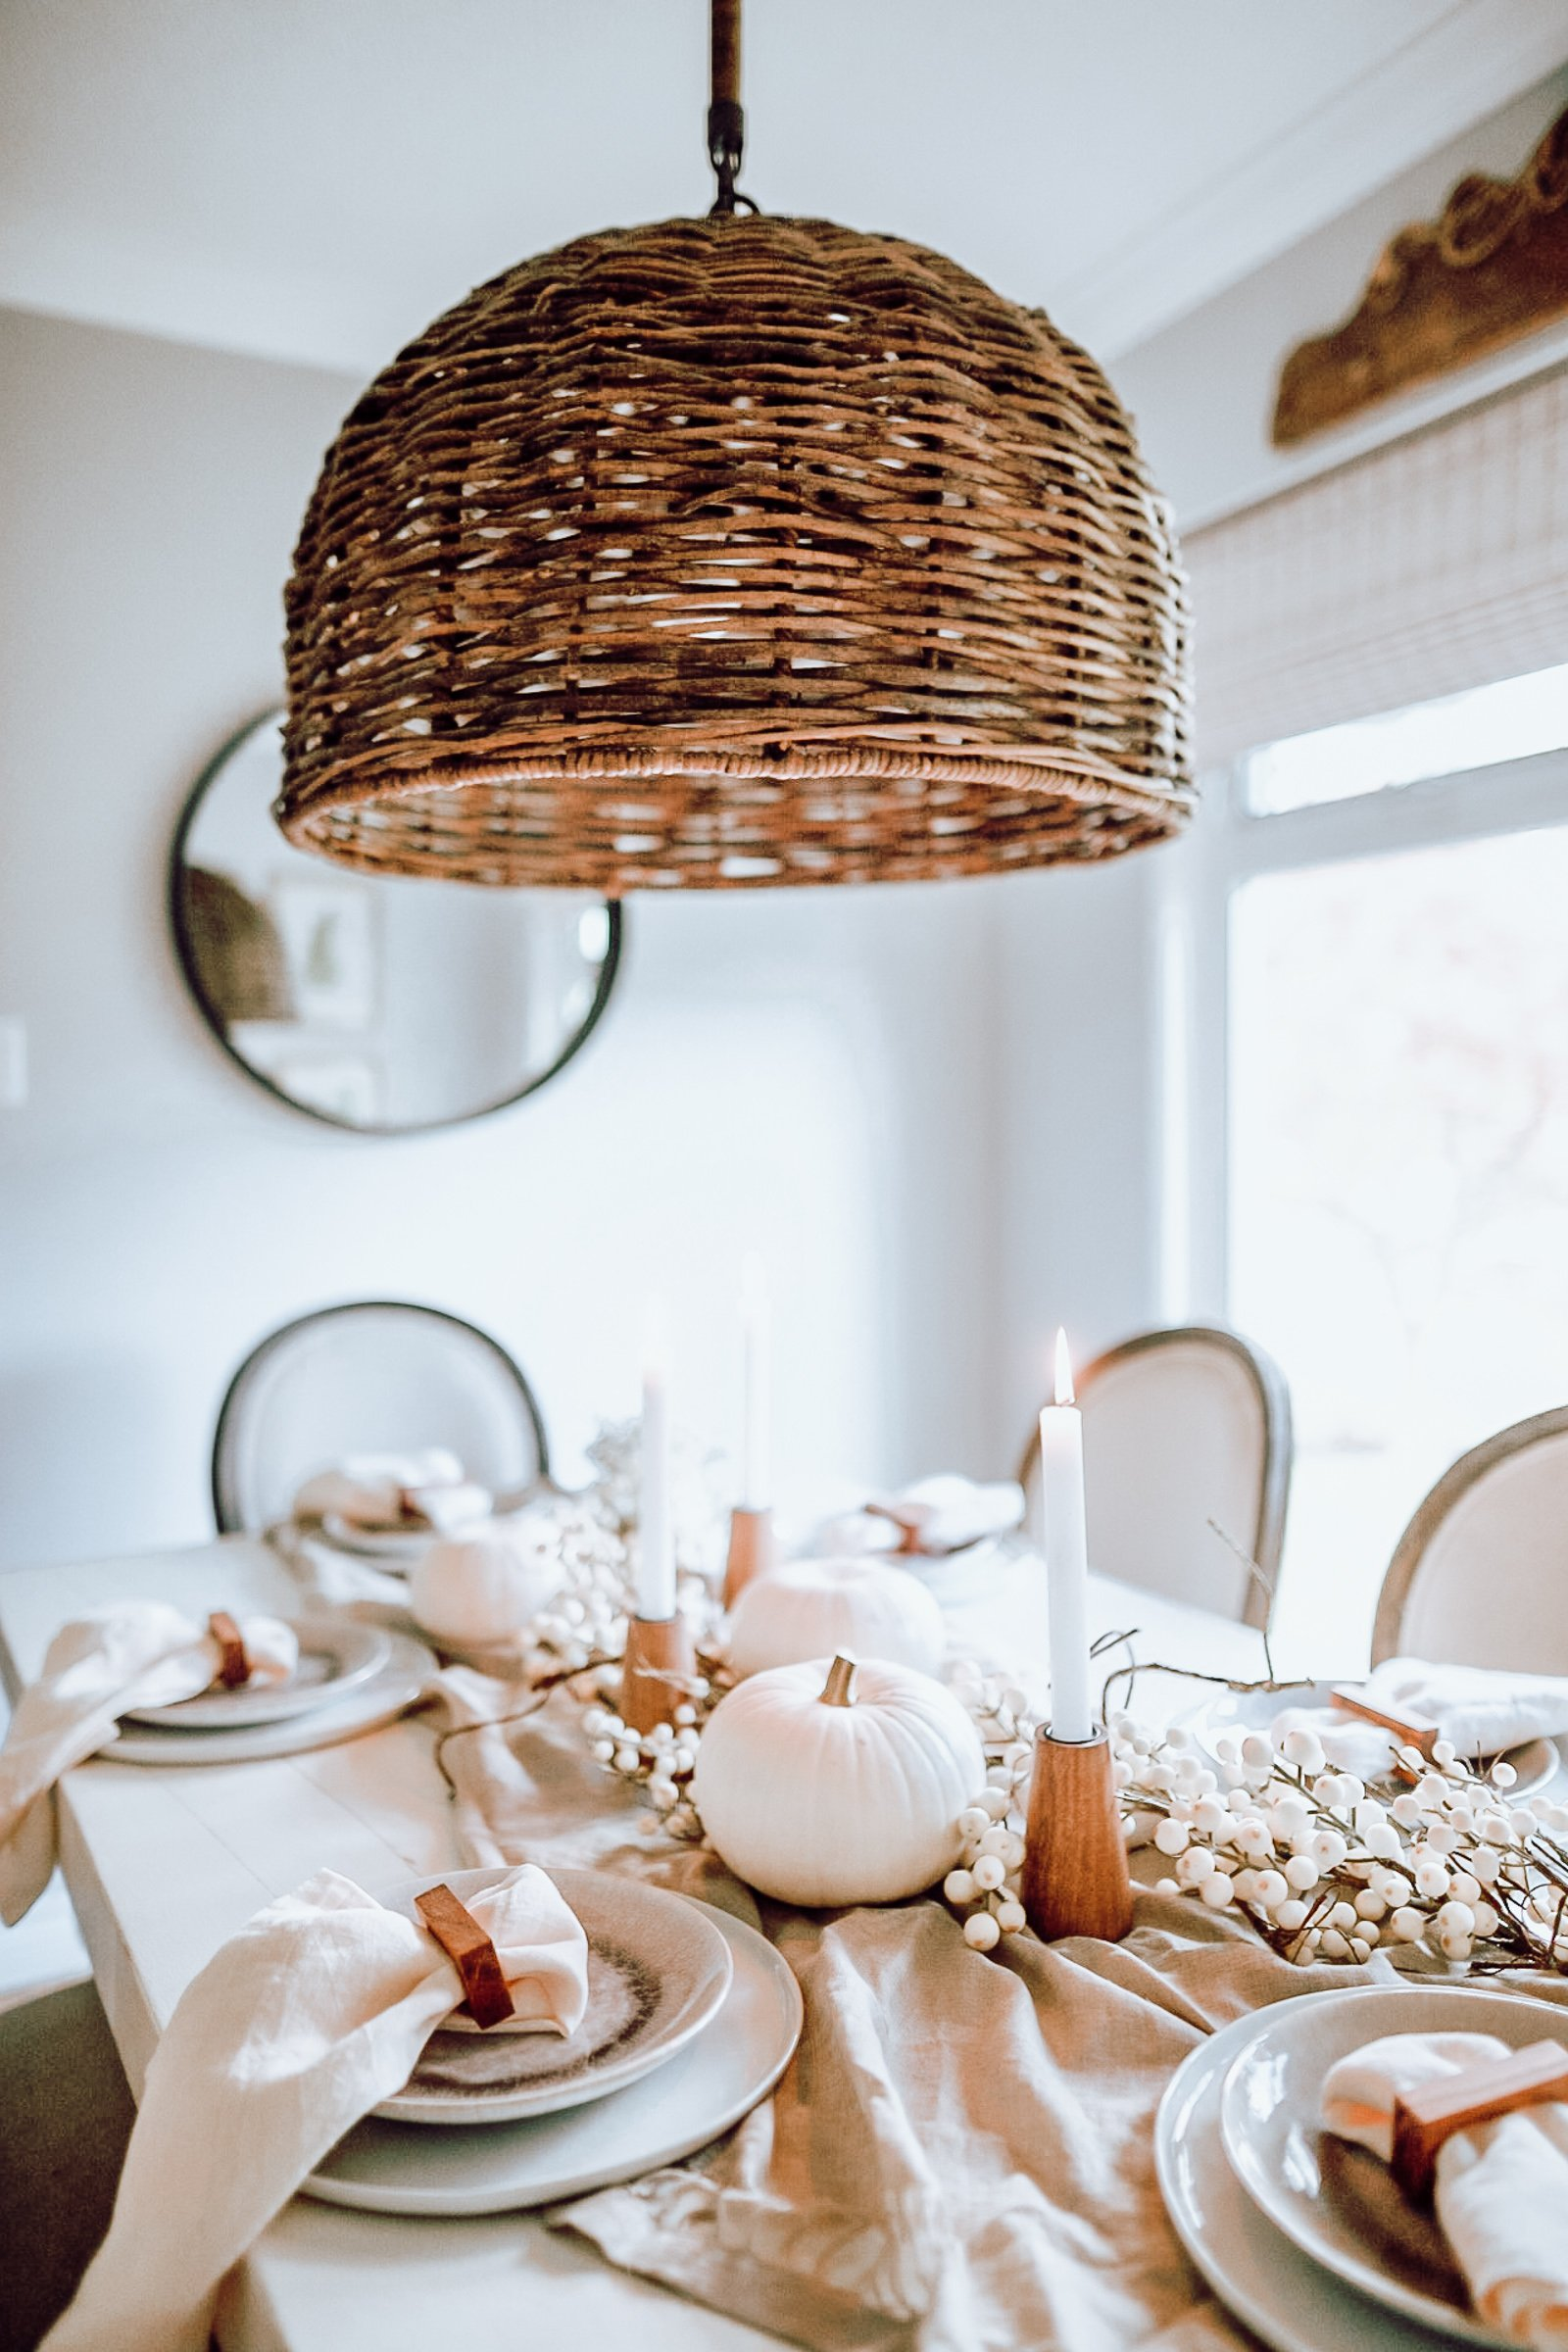 White Picket Farmhouse. Lifestyle Blog Featuring Home Decor, Motherhood and Travel